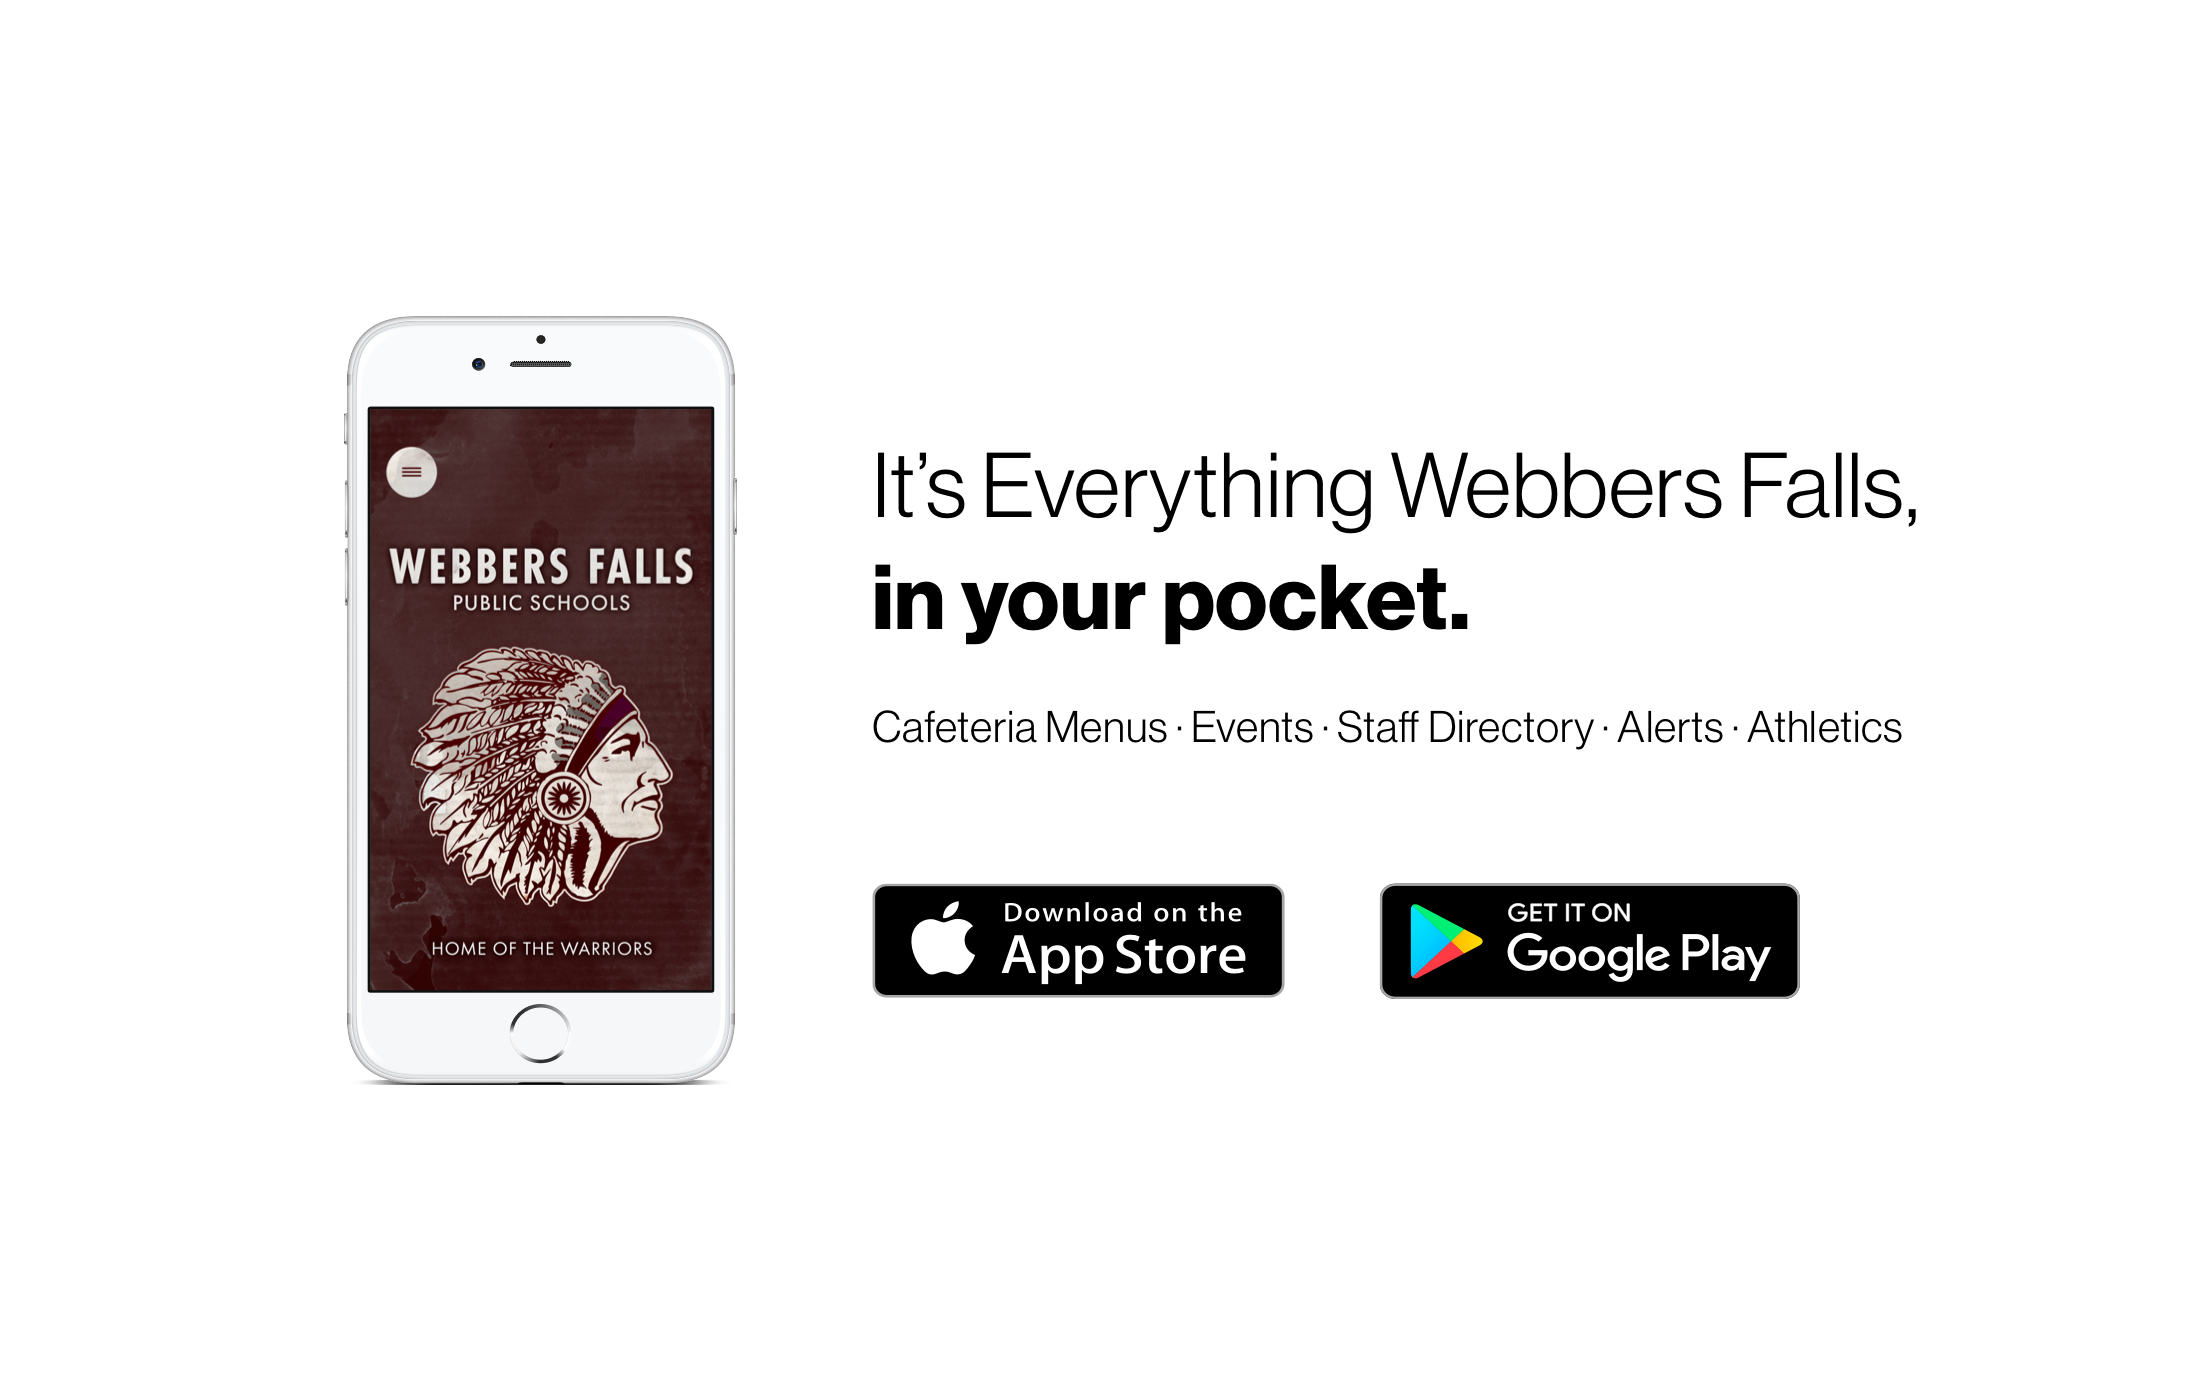 It's Everything Webbers Falls, in your pocket